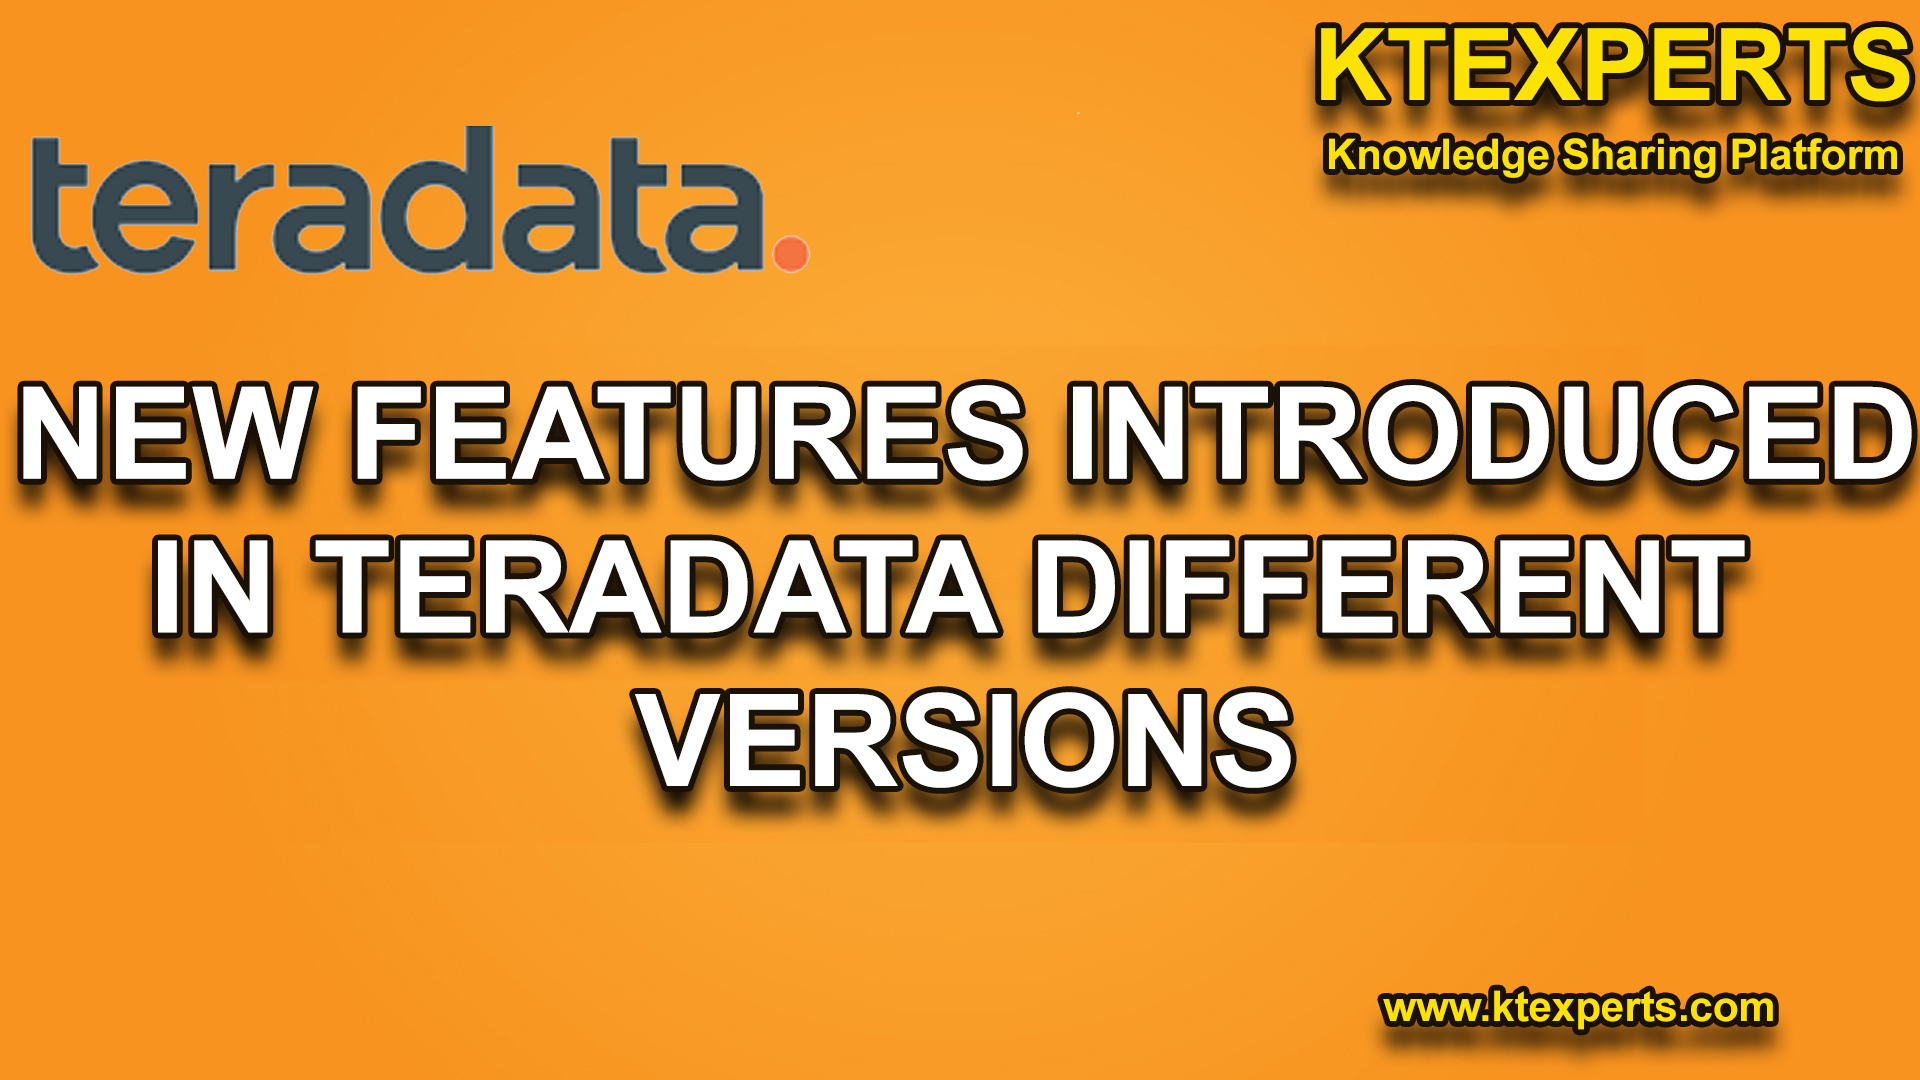 NEW FEATURES INTRODUCED IN TERADATA DIFFERENT VERSIONS